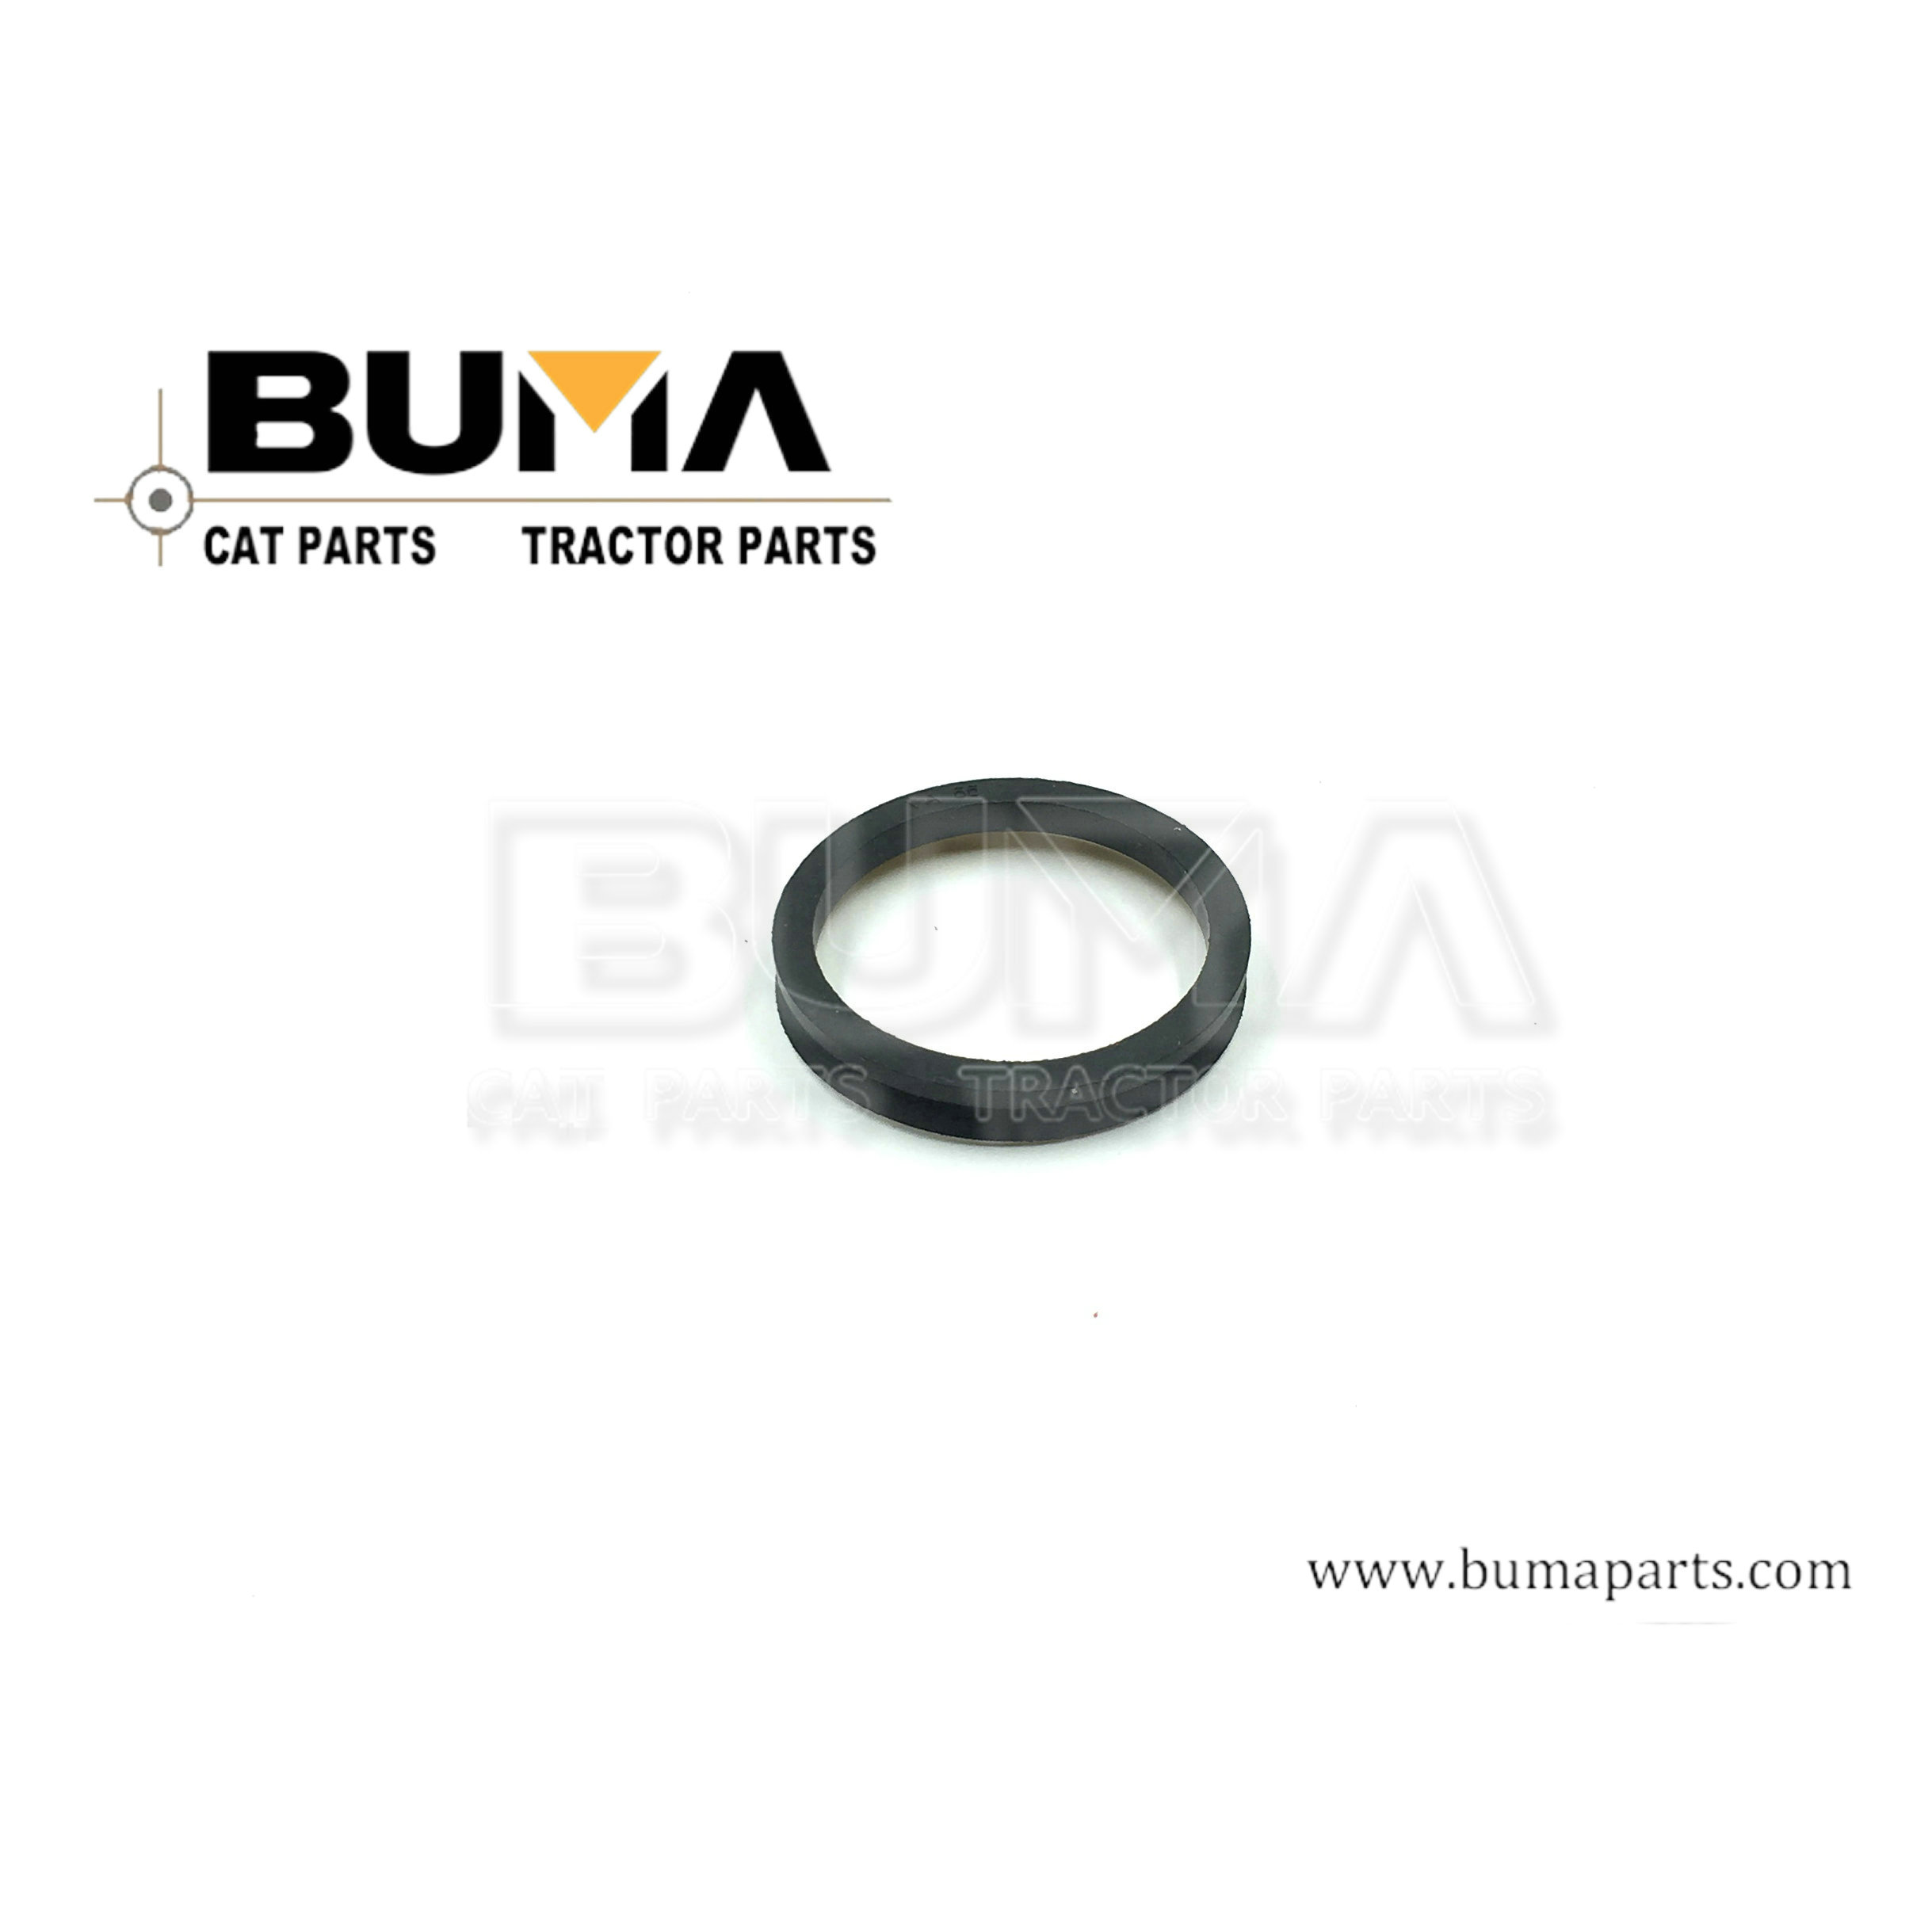 6651709 BOBCAT PARTS LOWER PIVOT PIN SEAL